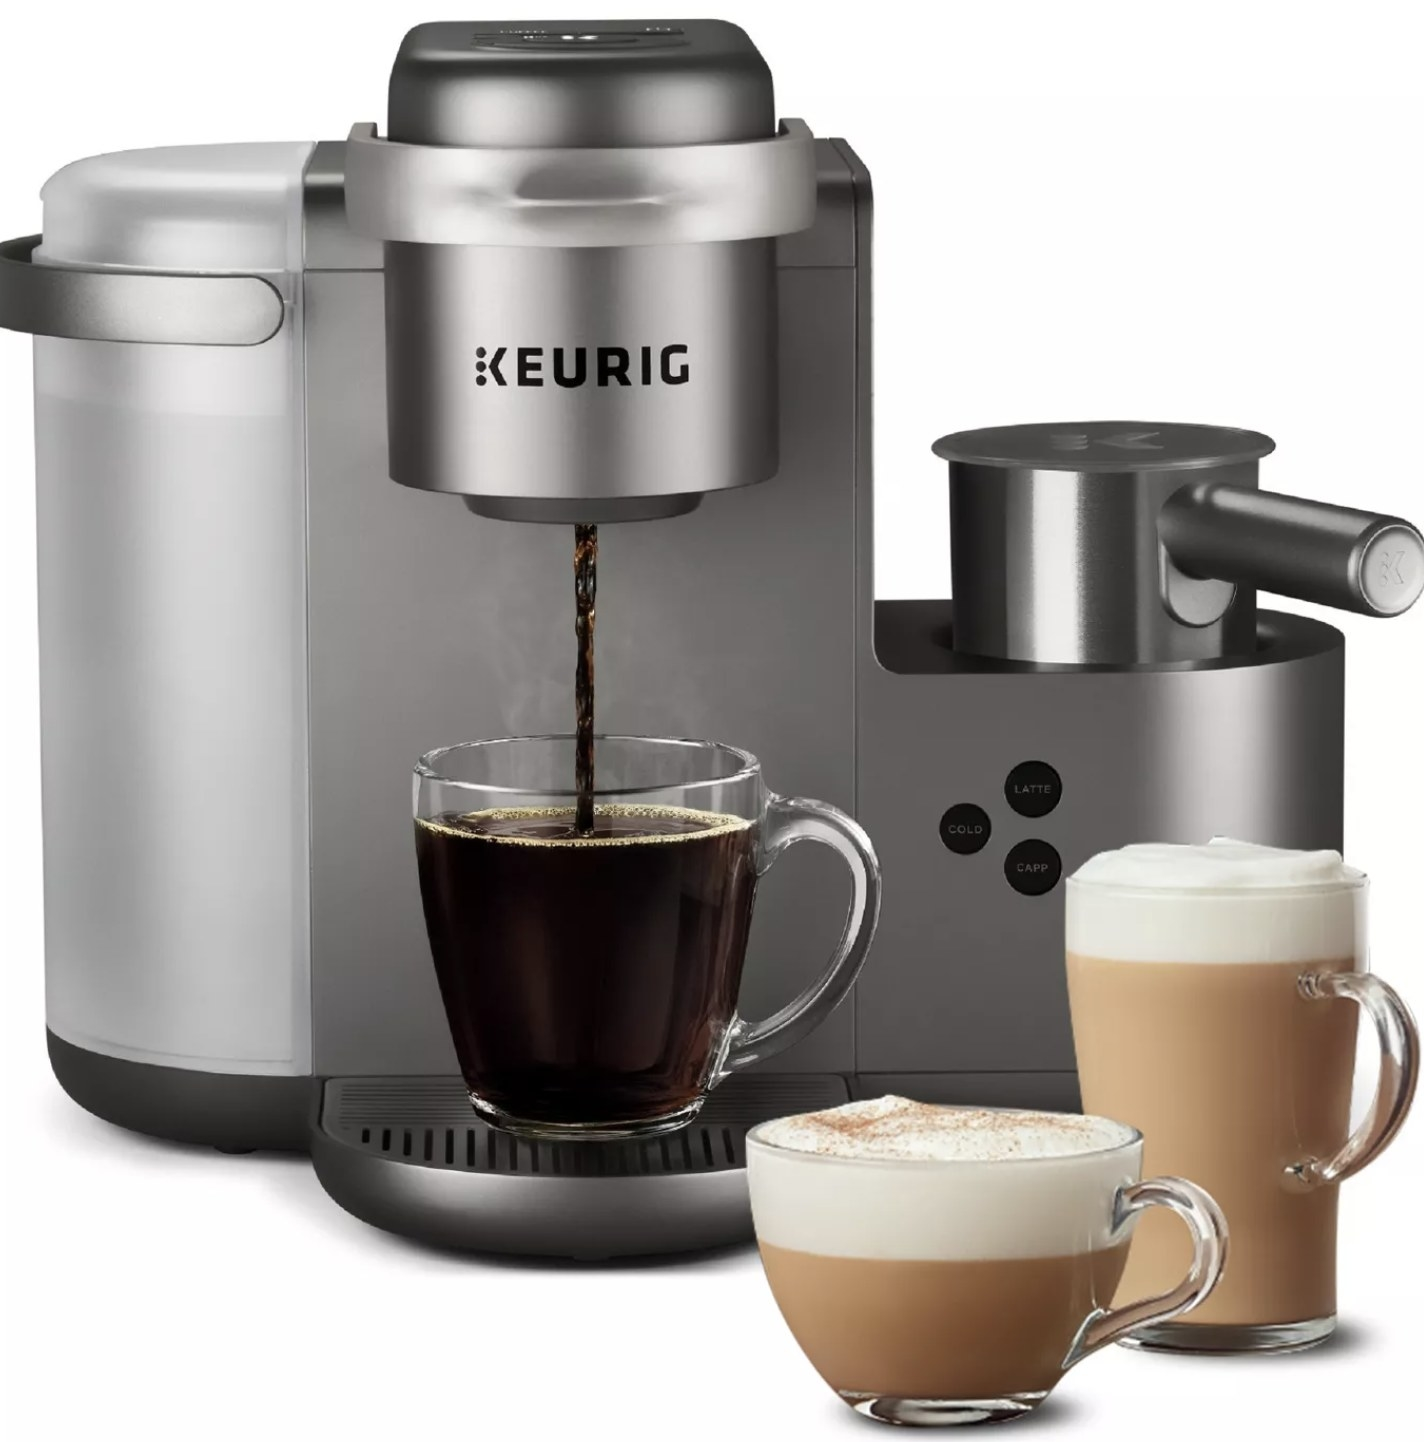 A stainless steel Keurig latté and cappuccino maker with three cups of lattés next to it